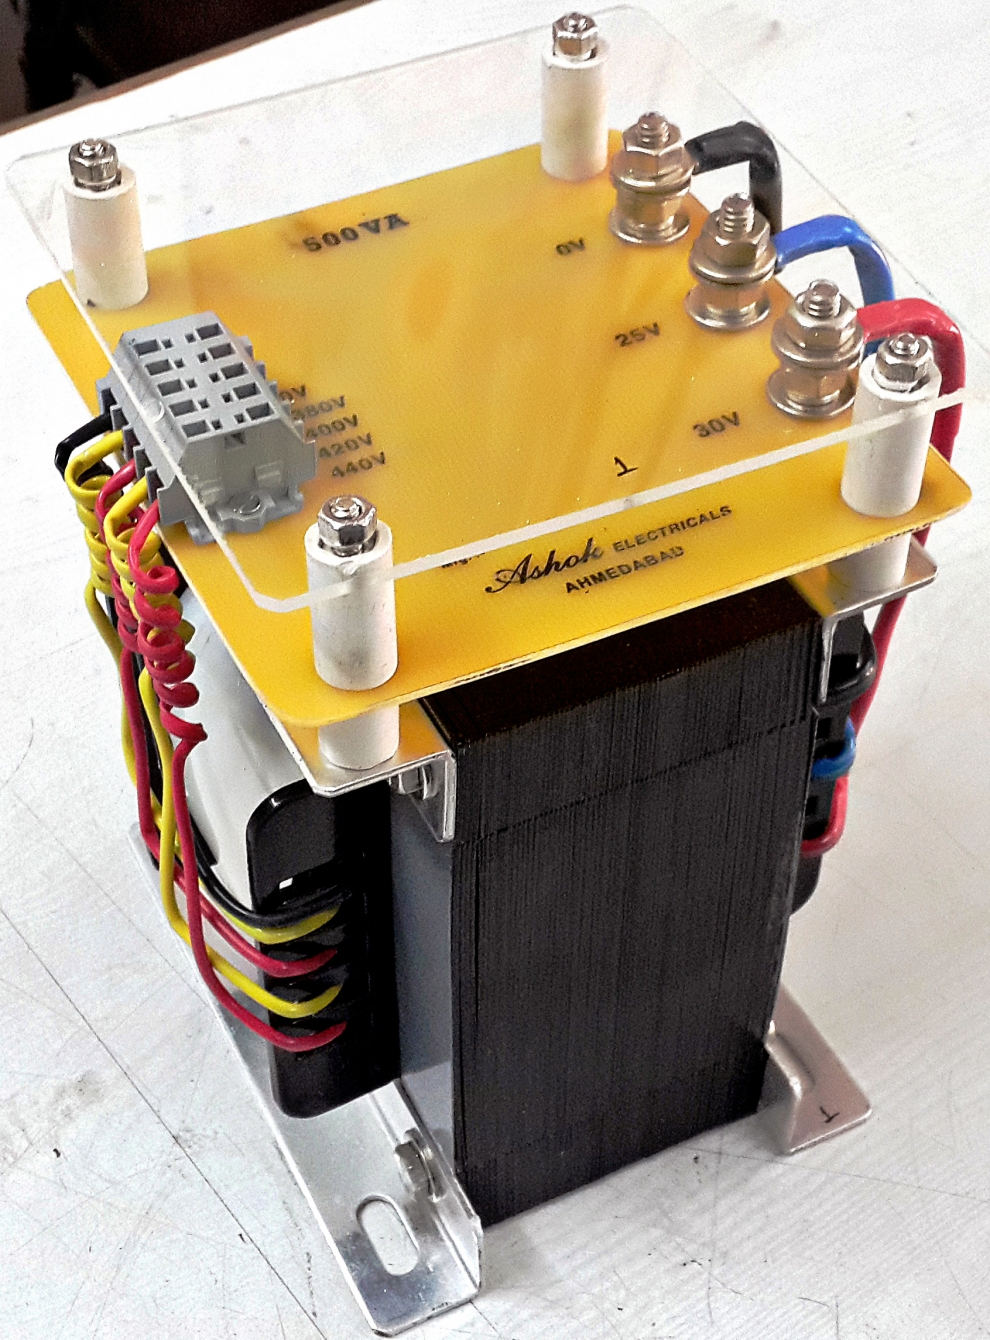 SINGLE PHASE And THREE PHASE TRANSFORMERS